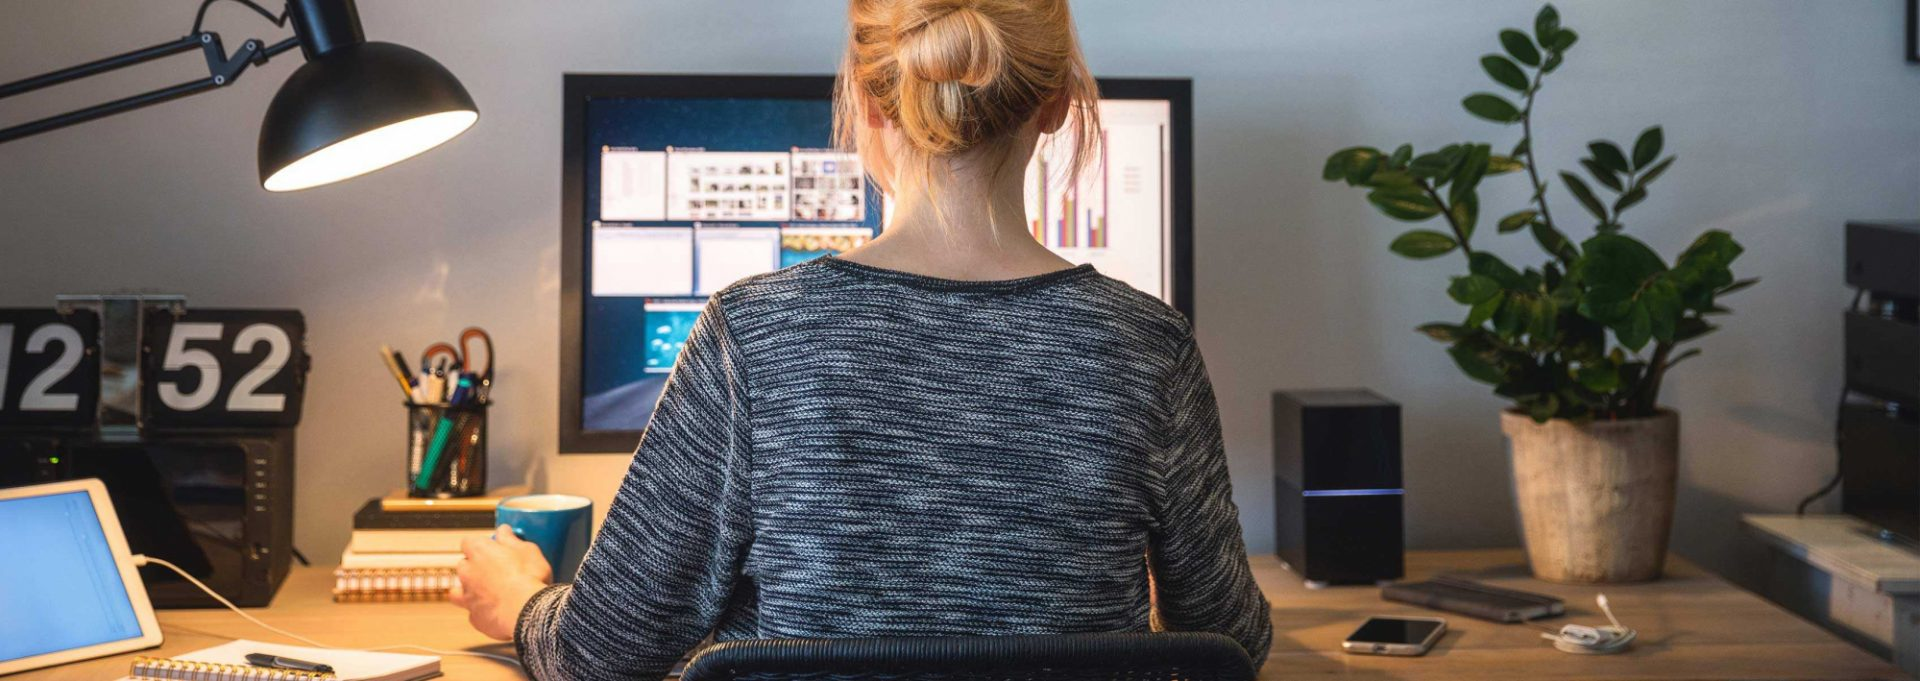 A woman sitting at her desk, working on a computer.